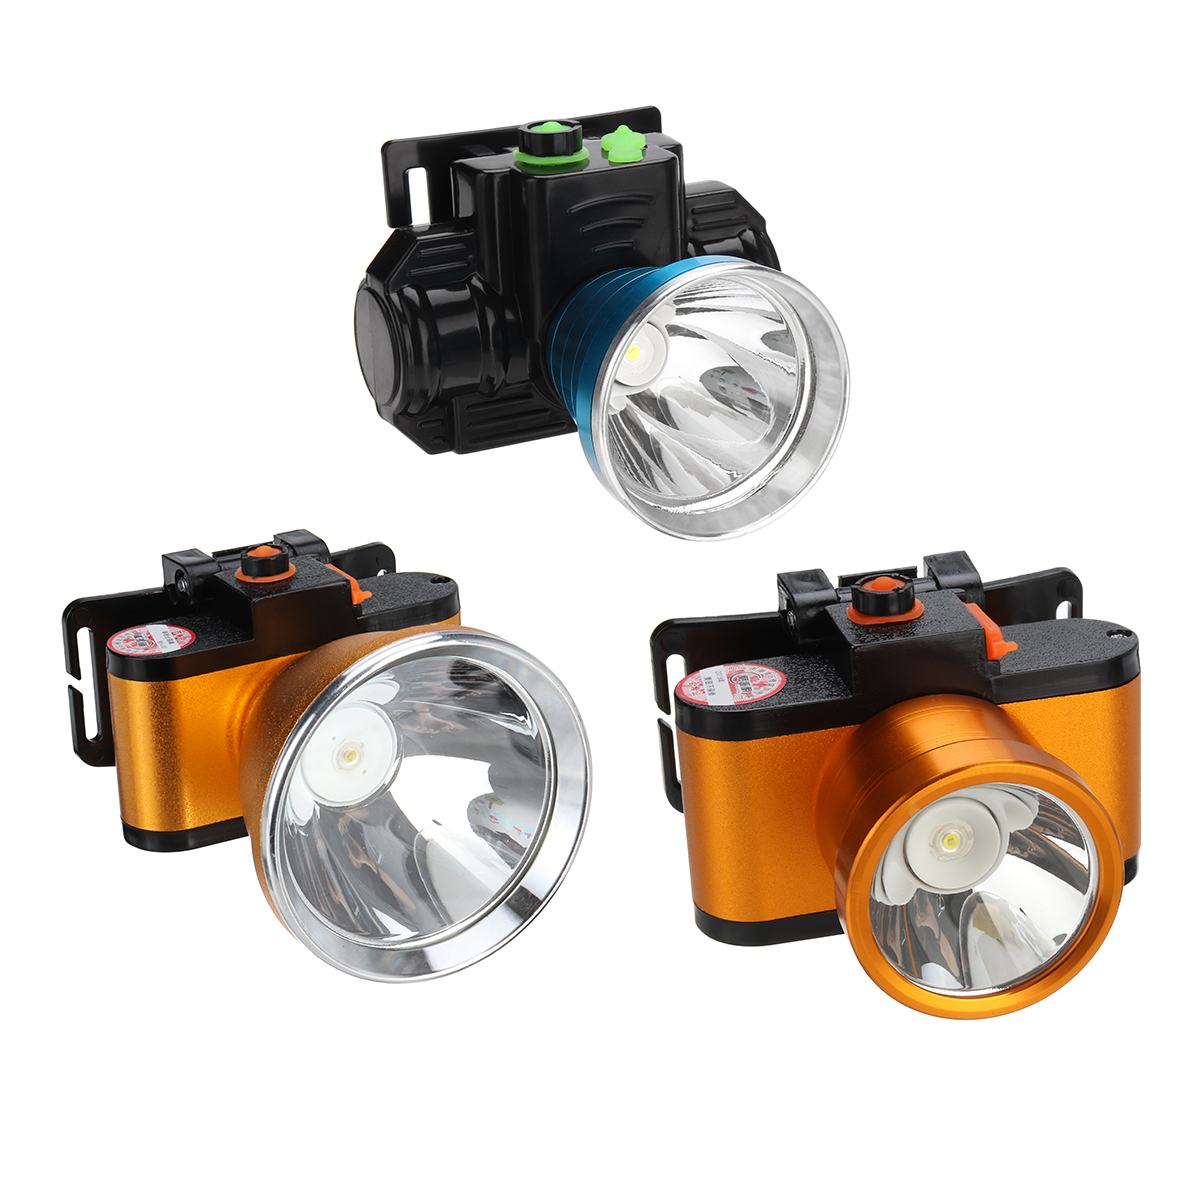 BIKIGHT 35/50/60W T6 Mini LED High Brightness Fishing Headlamp IPX4 Waterproof Flashlight Torch Lamp